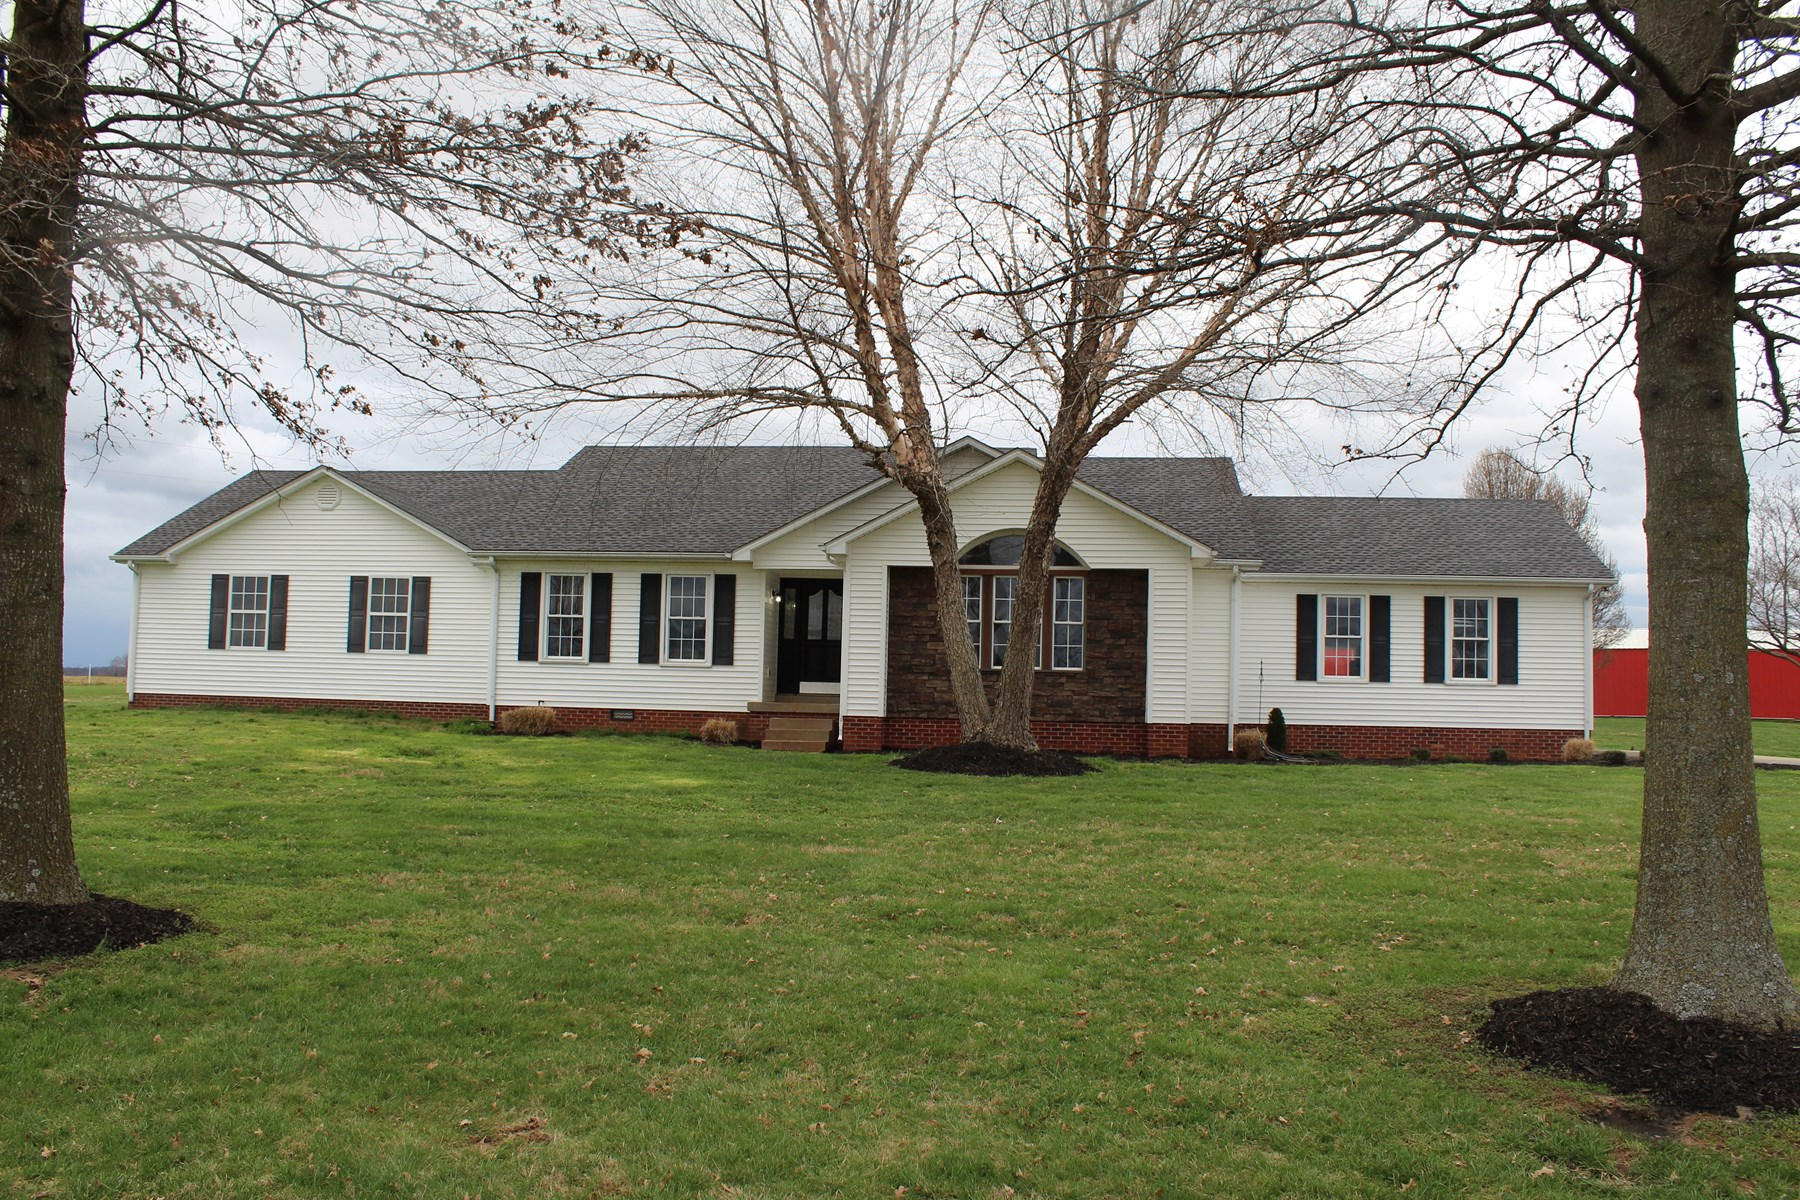 Country home with large lot for sale near Oakland Ky.